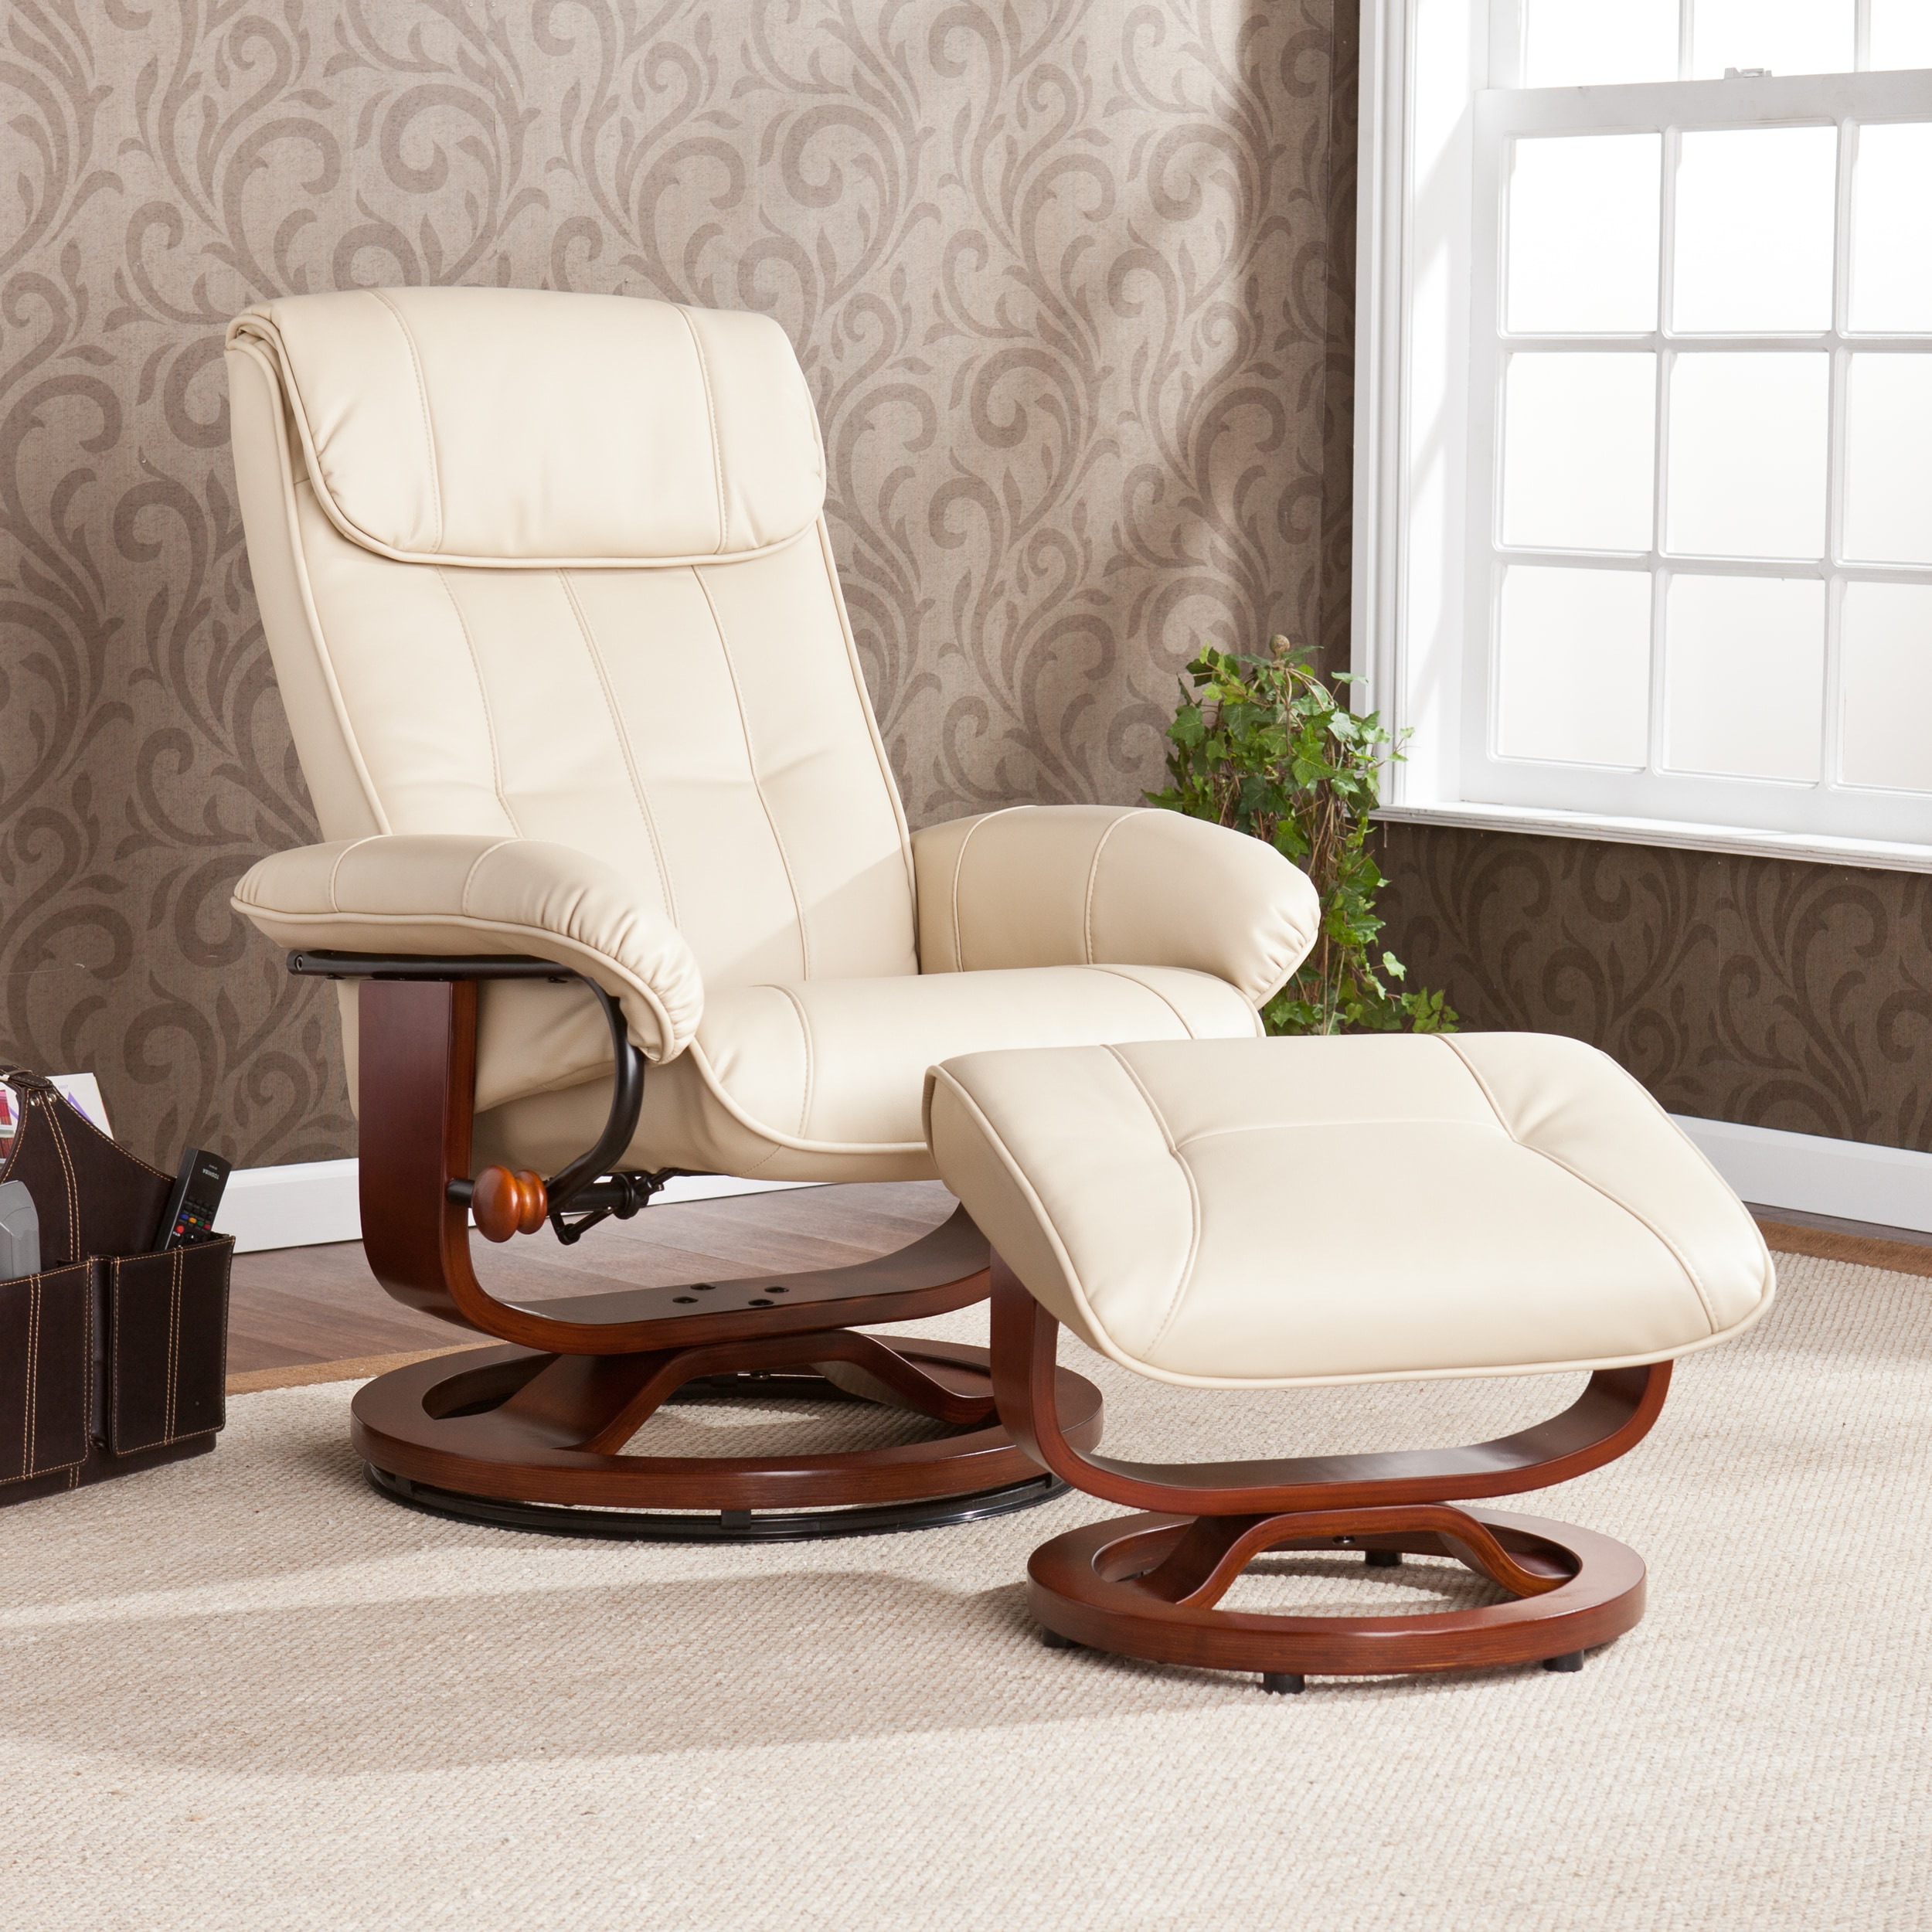 Upton Home Viridian Taupe Recliner/ Ottoman Set at Sears.com